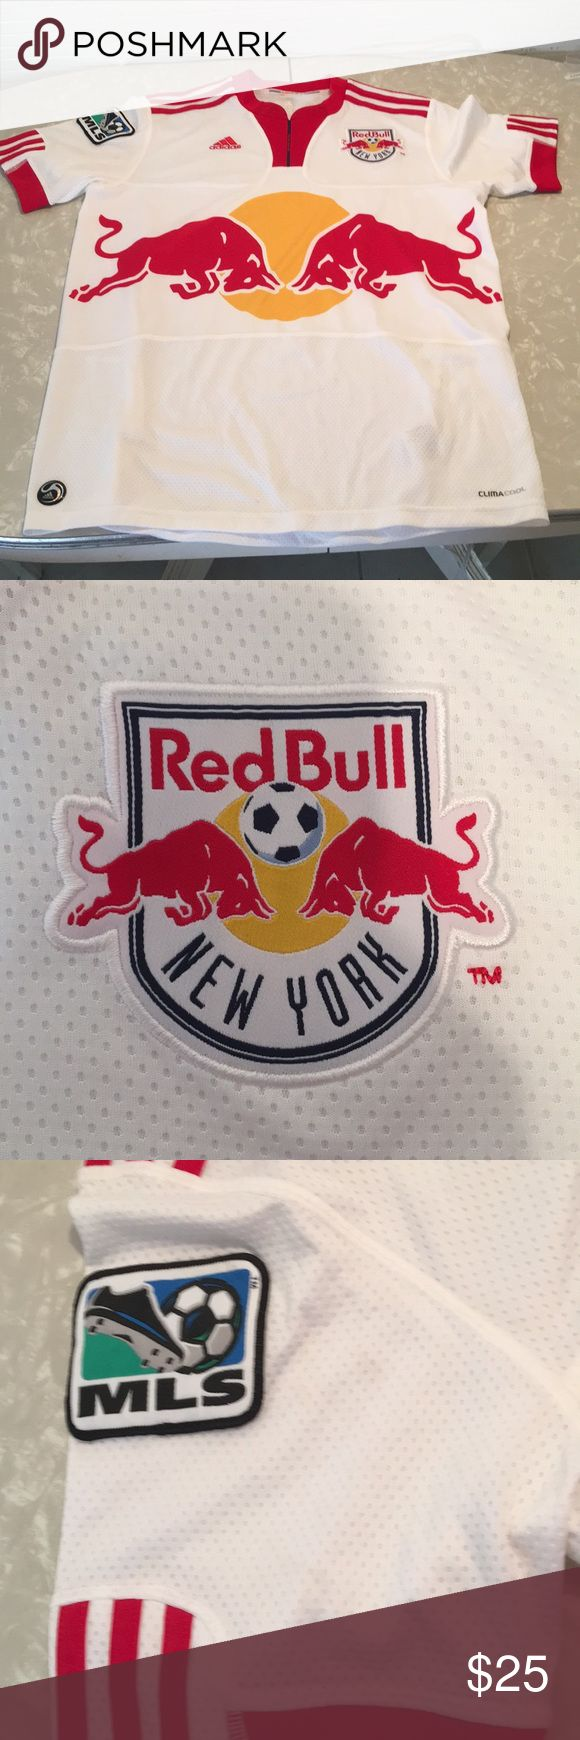 NY Red Bull's Soccer Jersey NY Red Bull's Adidas Soccer Jersey White Youth Extra Large In great condition only worn a few times adidas Shirts & Tops